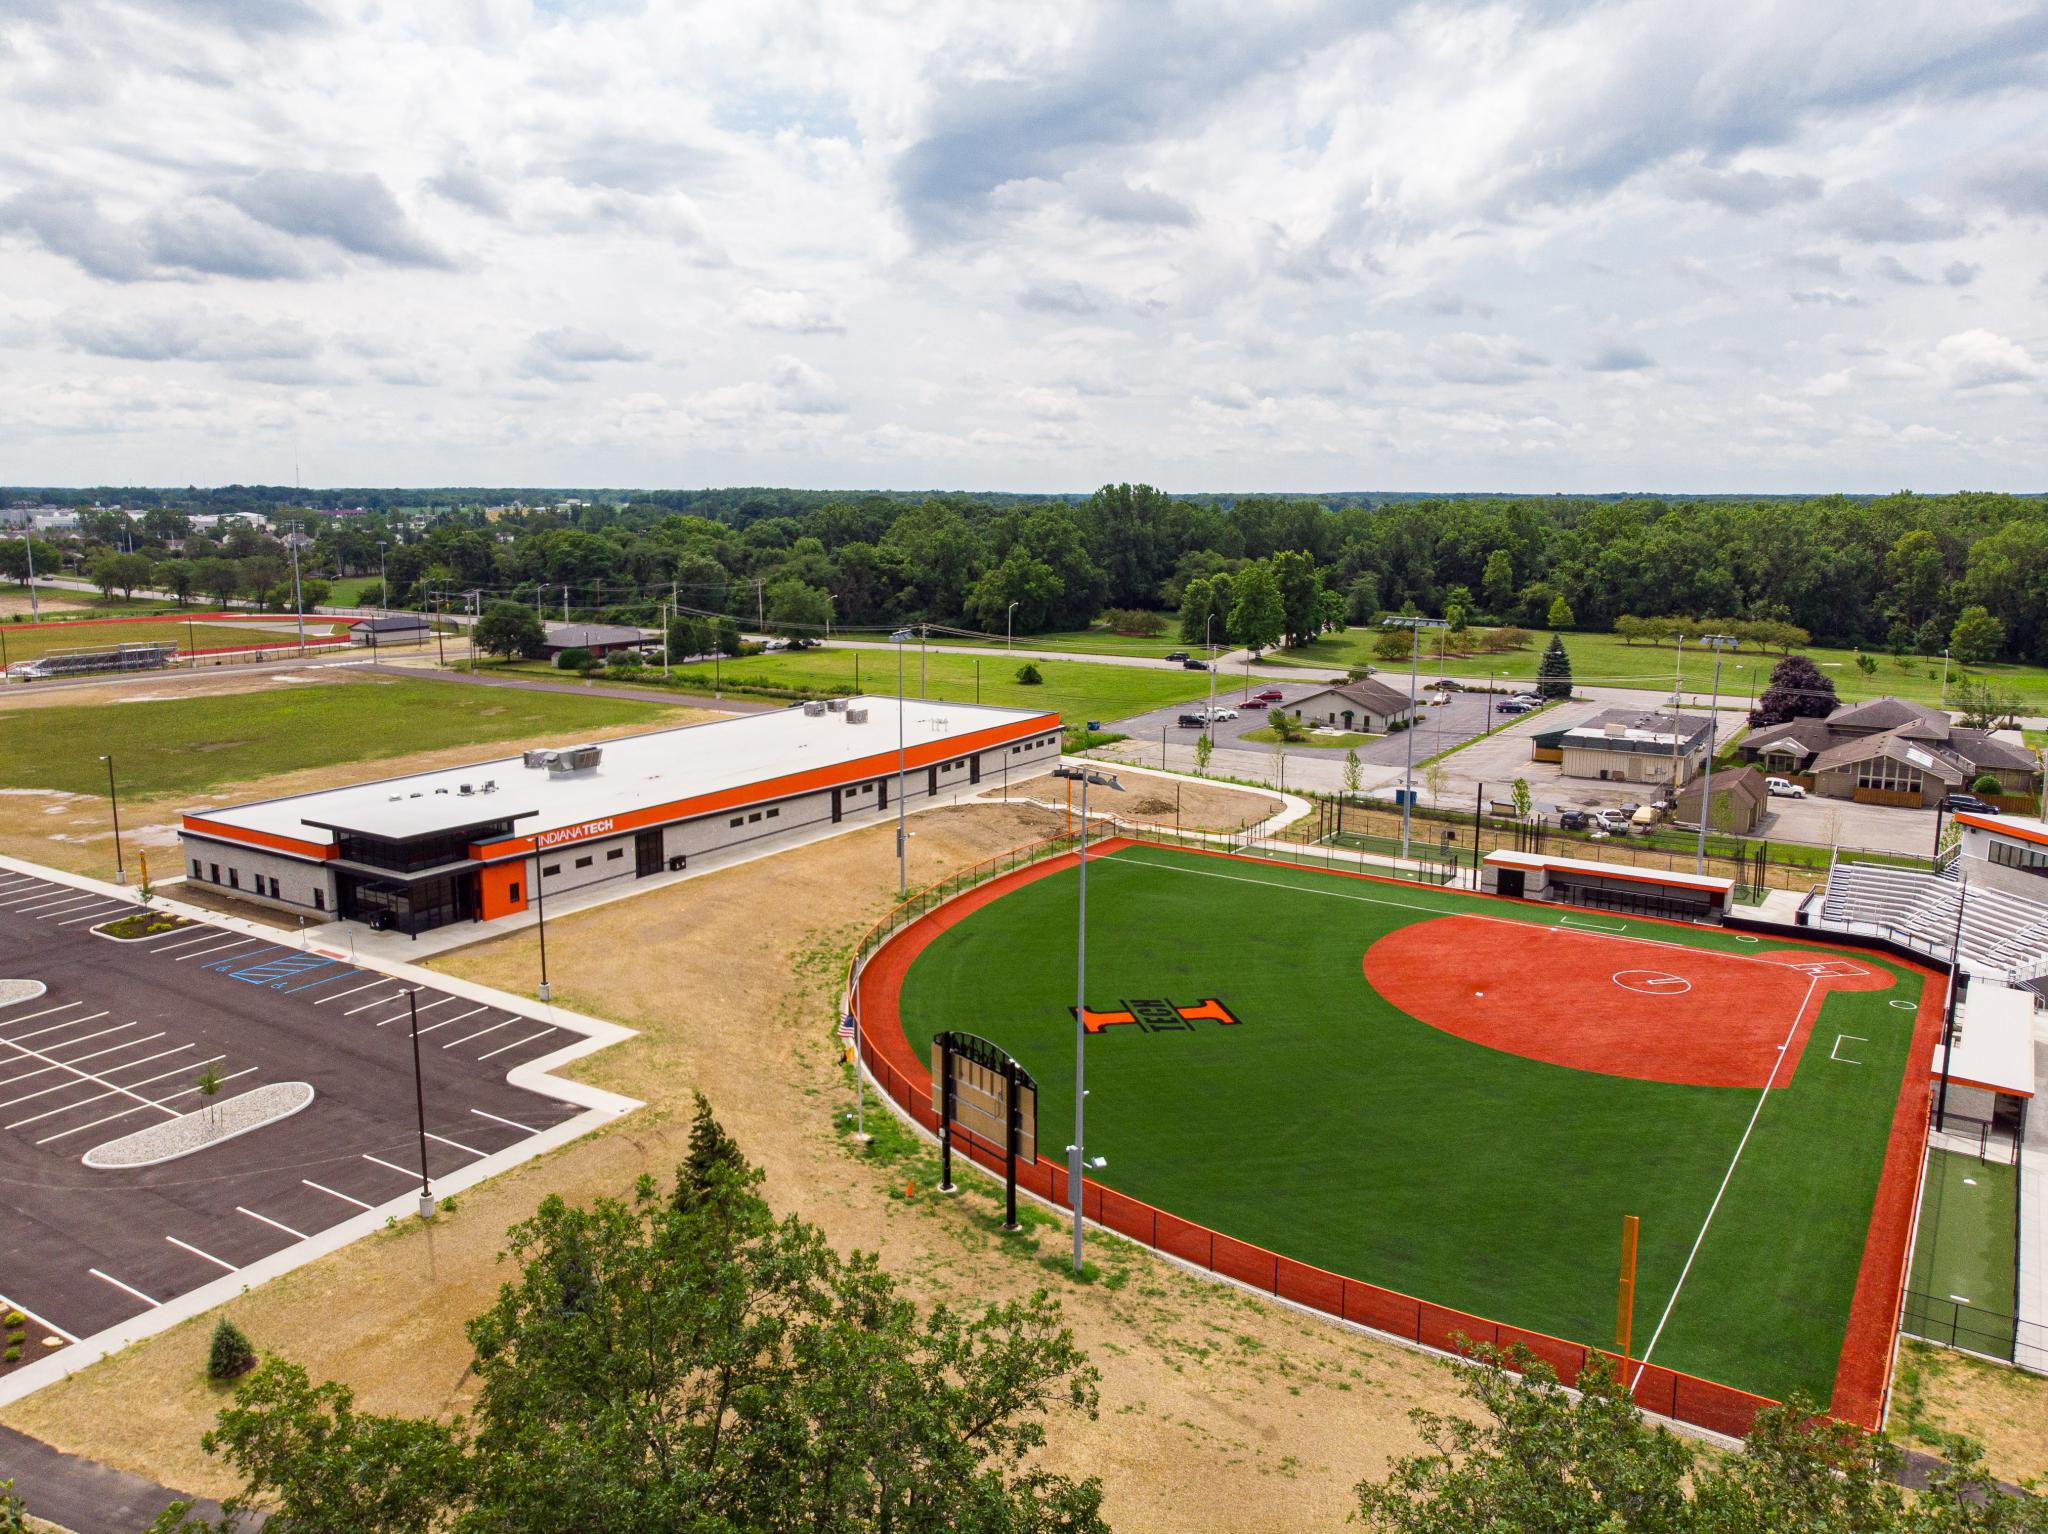 drone image of a softball field and building